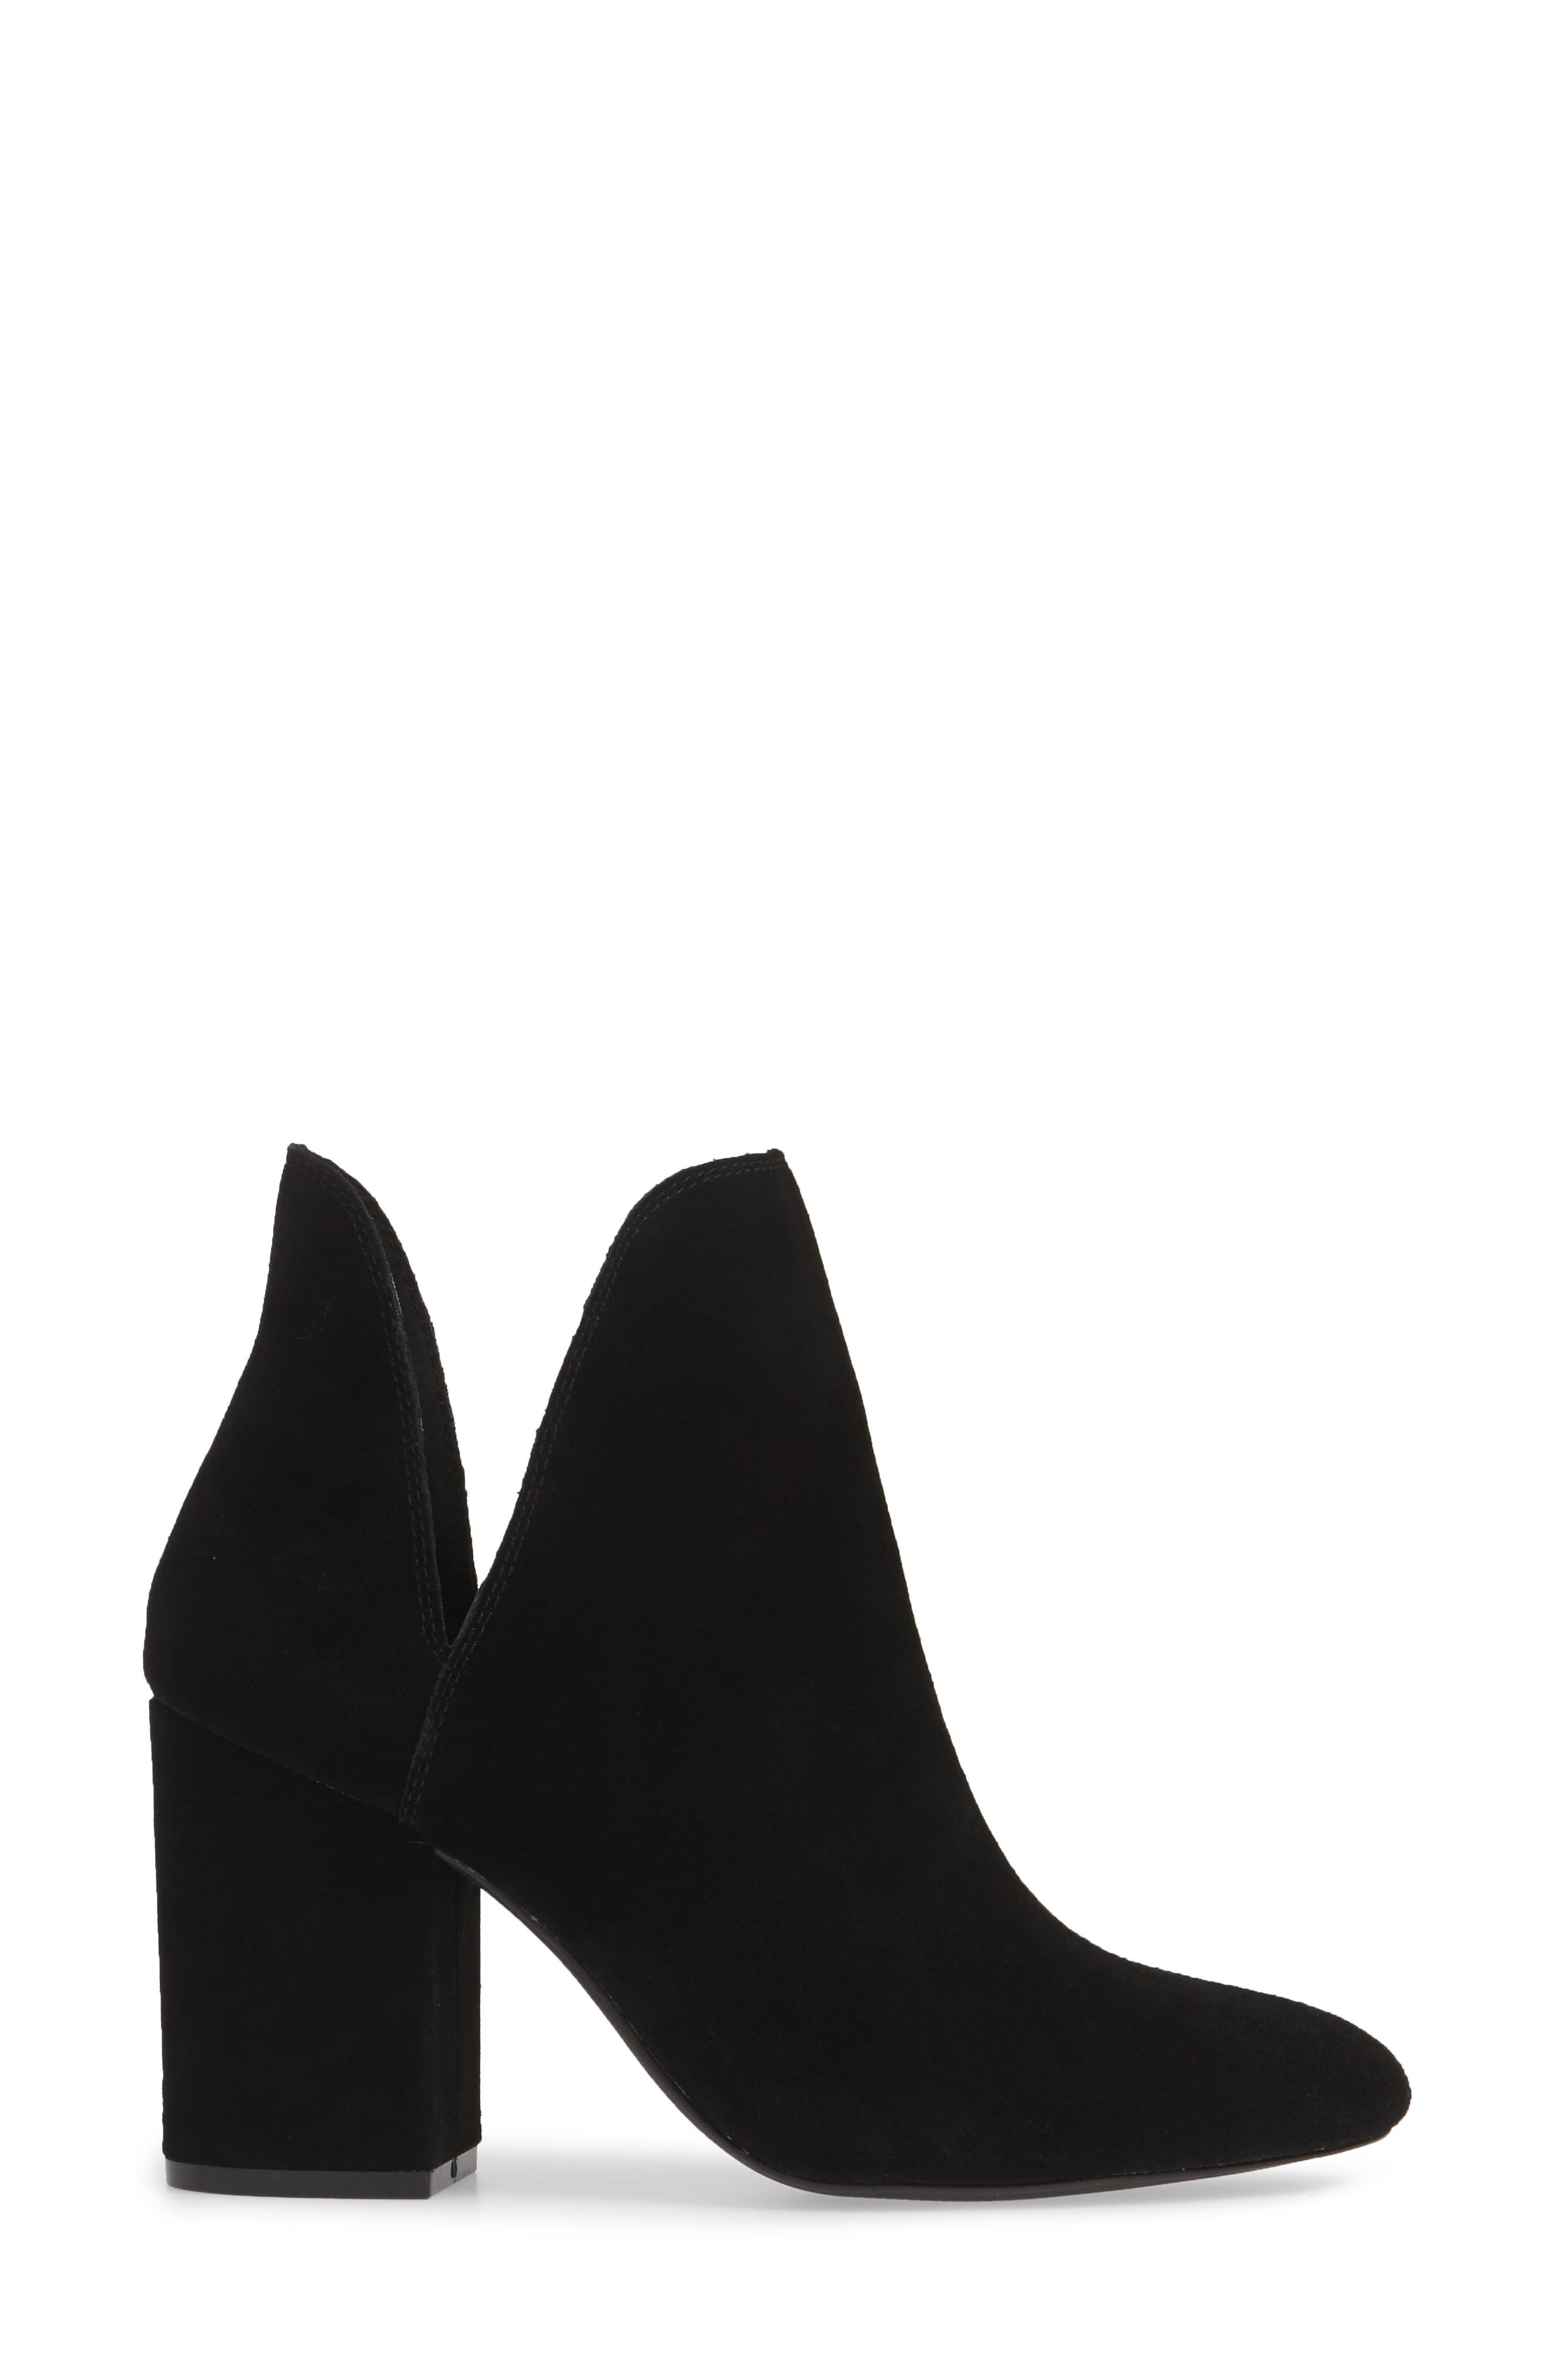 STEVE MADDEN, Rookie Bootie, Alternate thumbnail 3, color, BLACK SUEDE